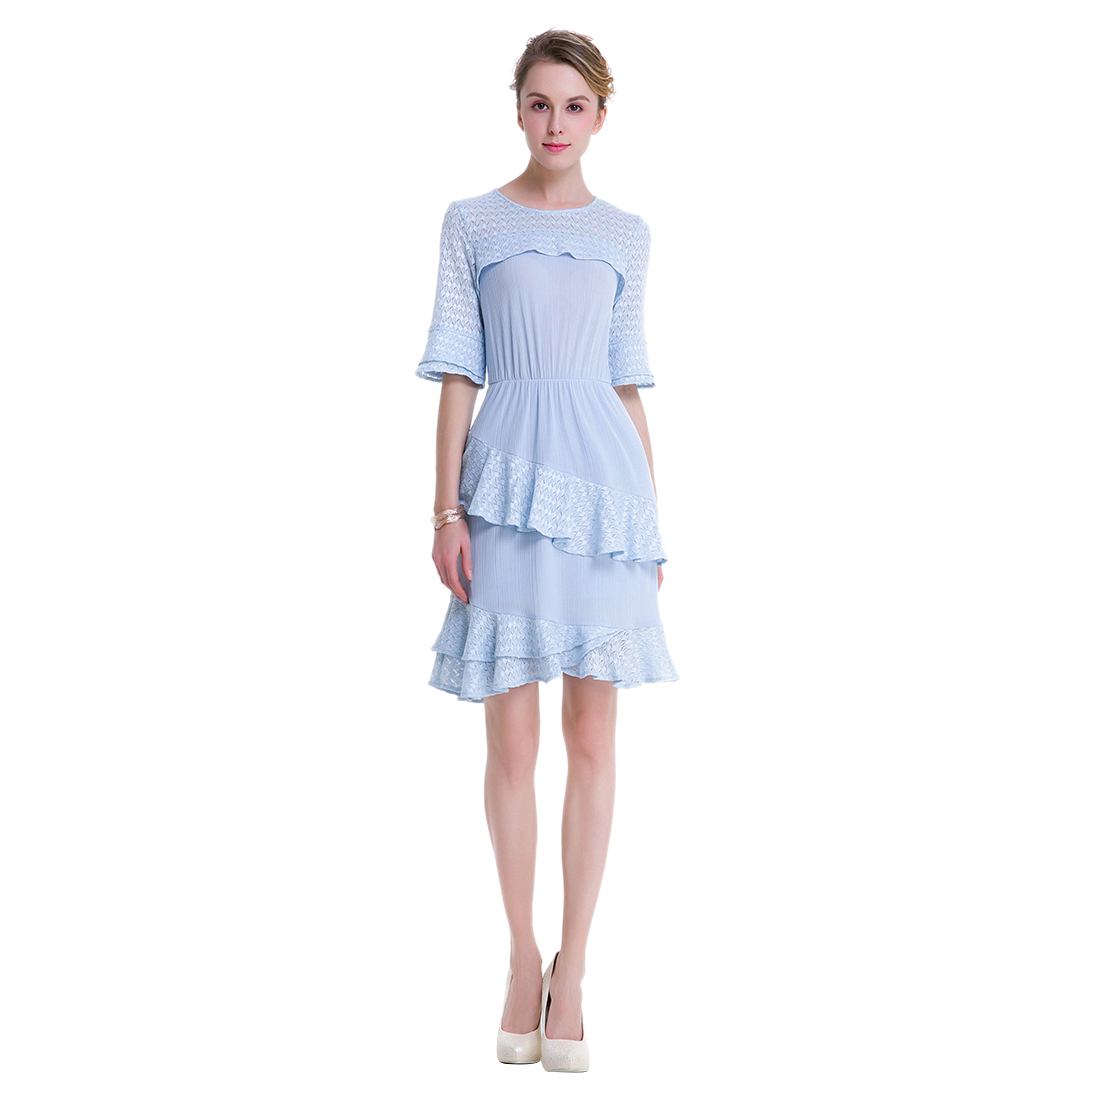 TFGS New Design Lace Pleated Short Dress Above Knee Mini Sweet Dresses For Women Formal Clothing